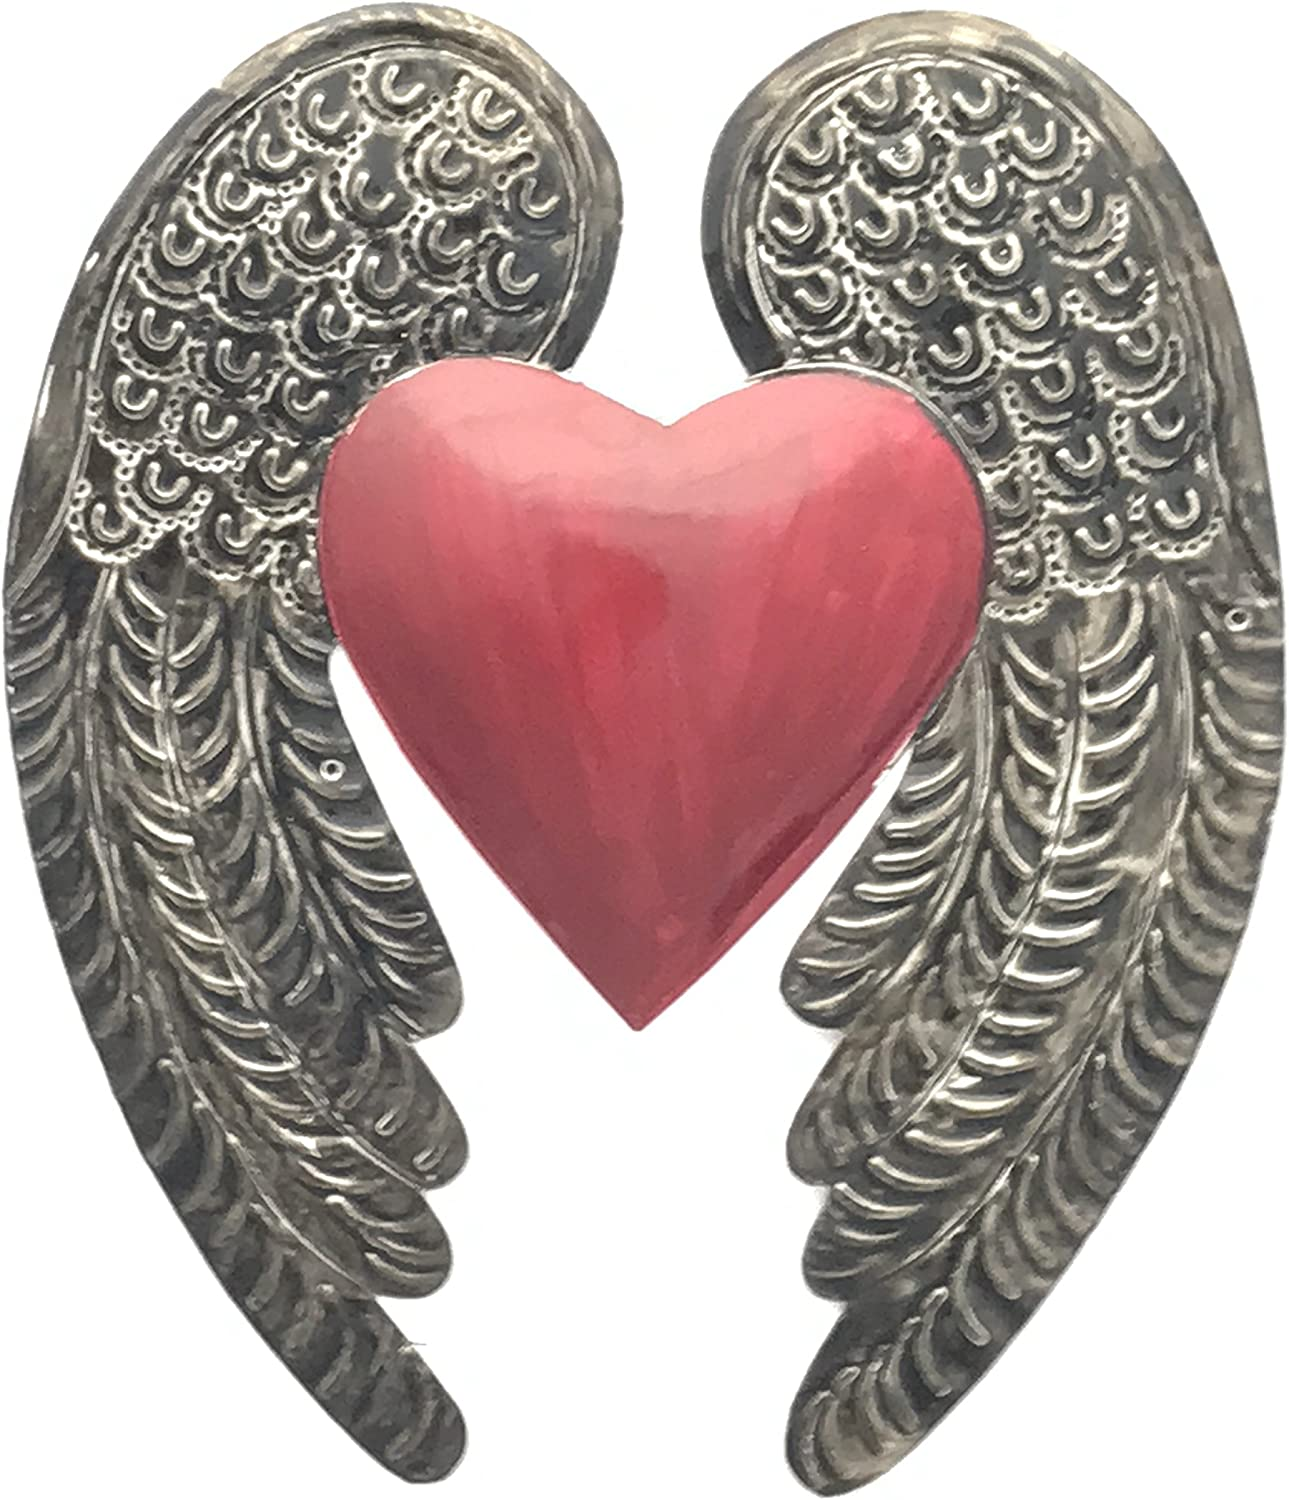 Madison Imports Milagro Heart Wings Milagro Ex Voto Tin Antique Silver Color. Beautiful Embossed